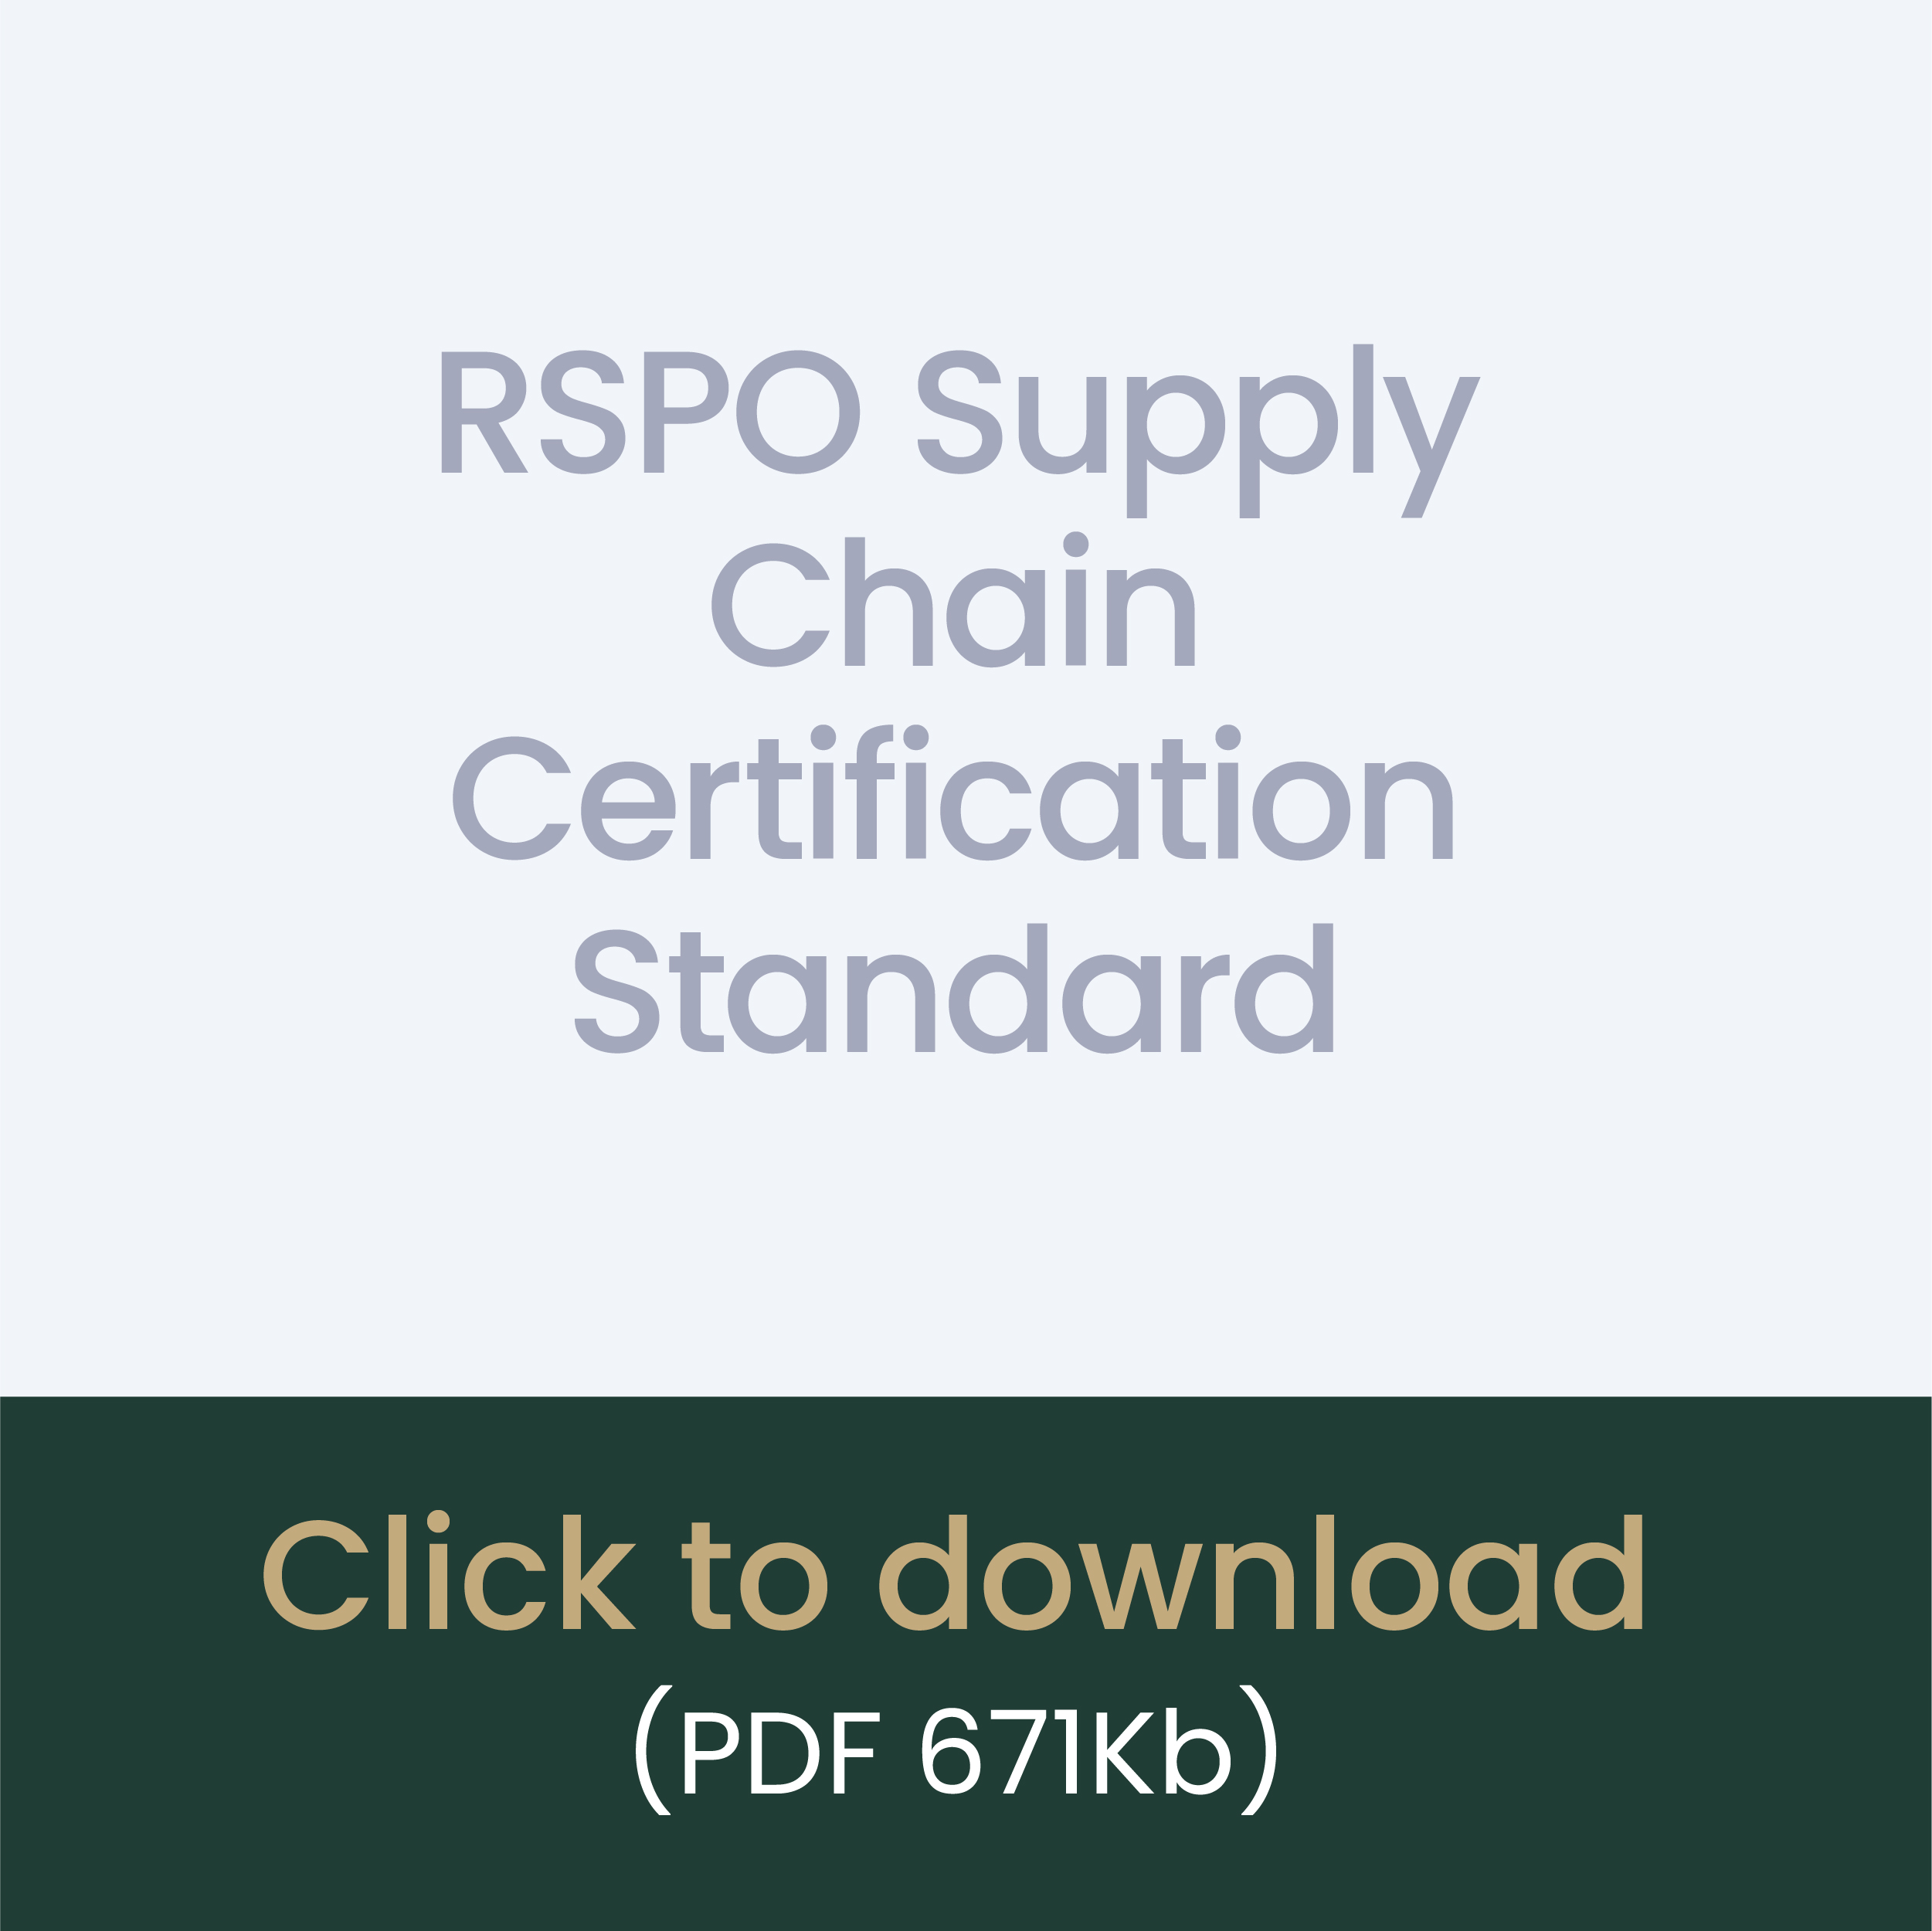 RSPO Supply Chain Certification Standard download link